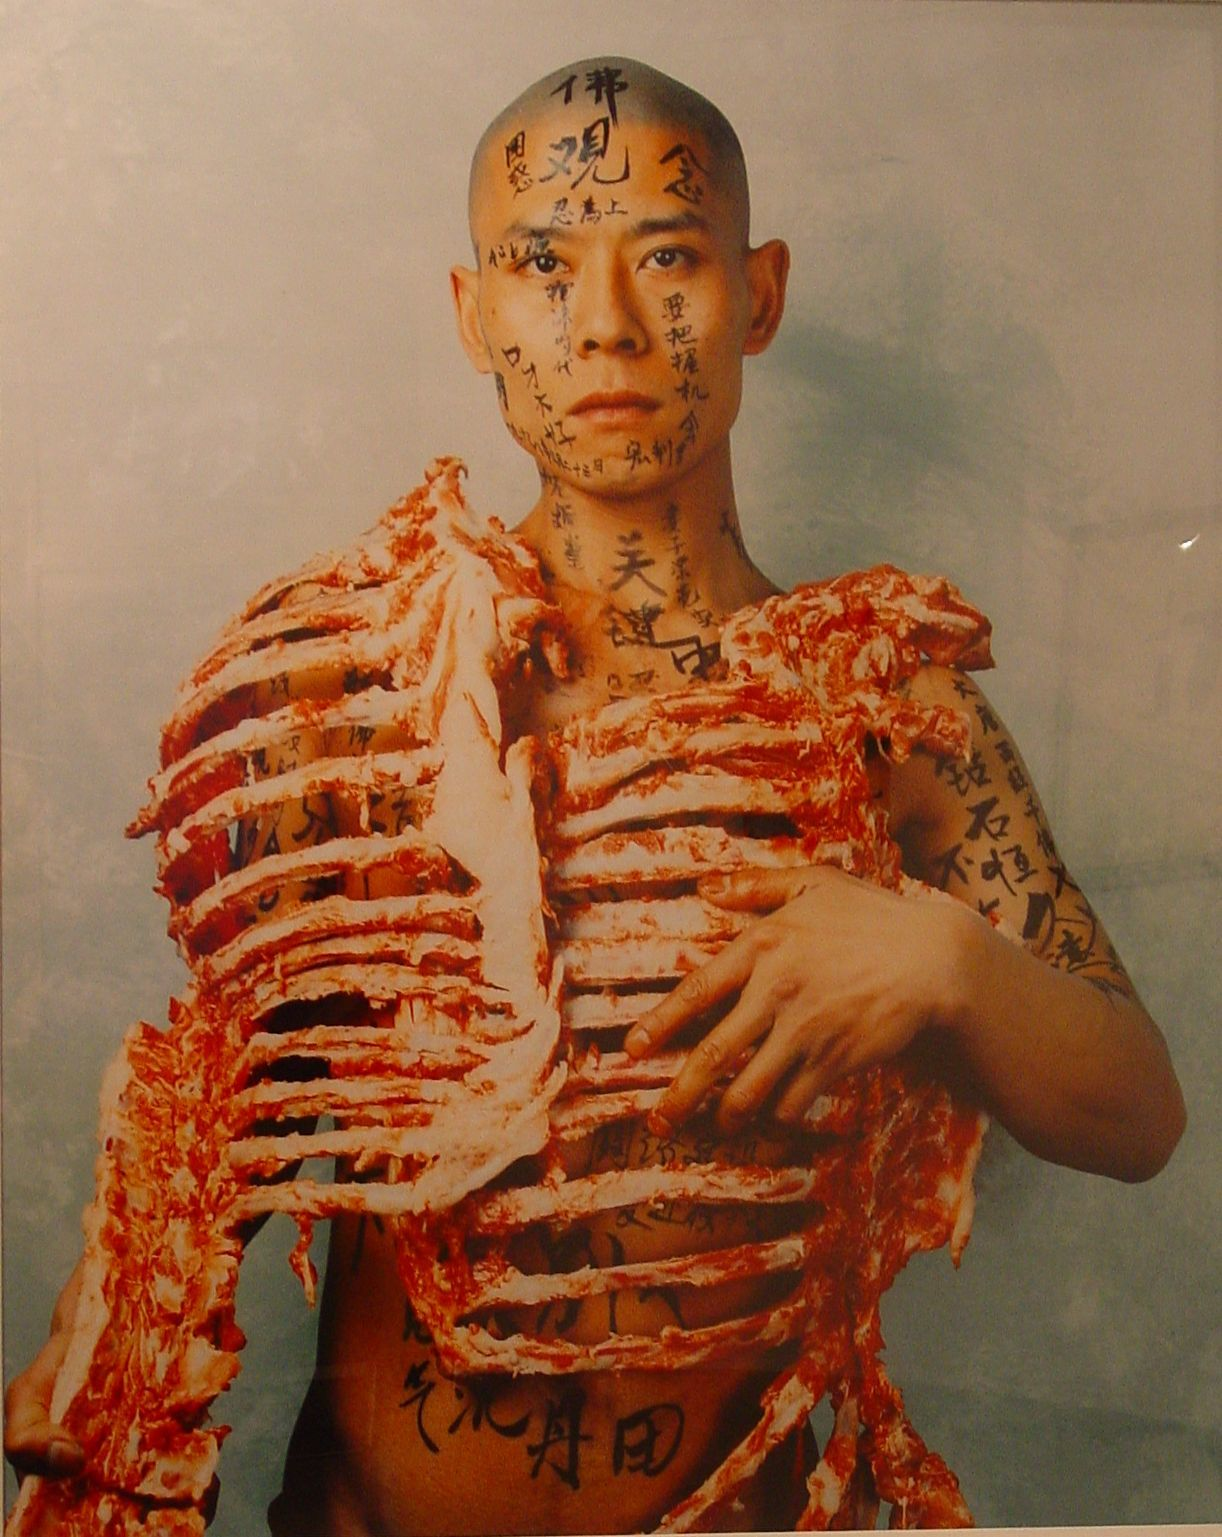 Zhang Huan, Meat and text, 1998